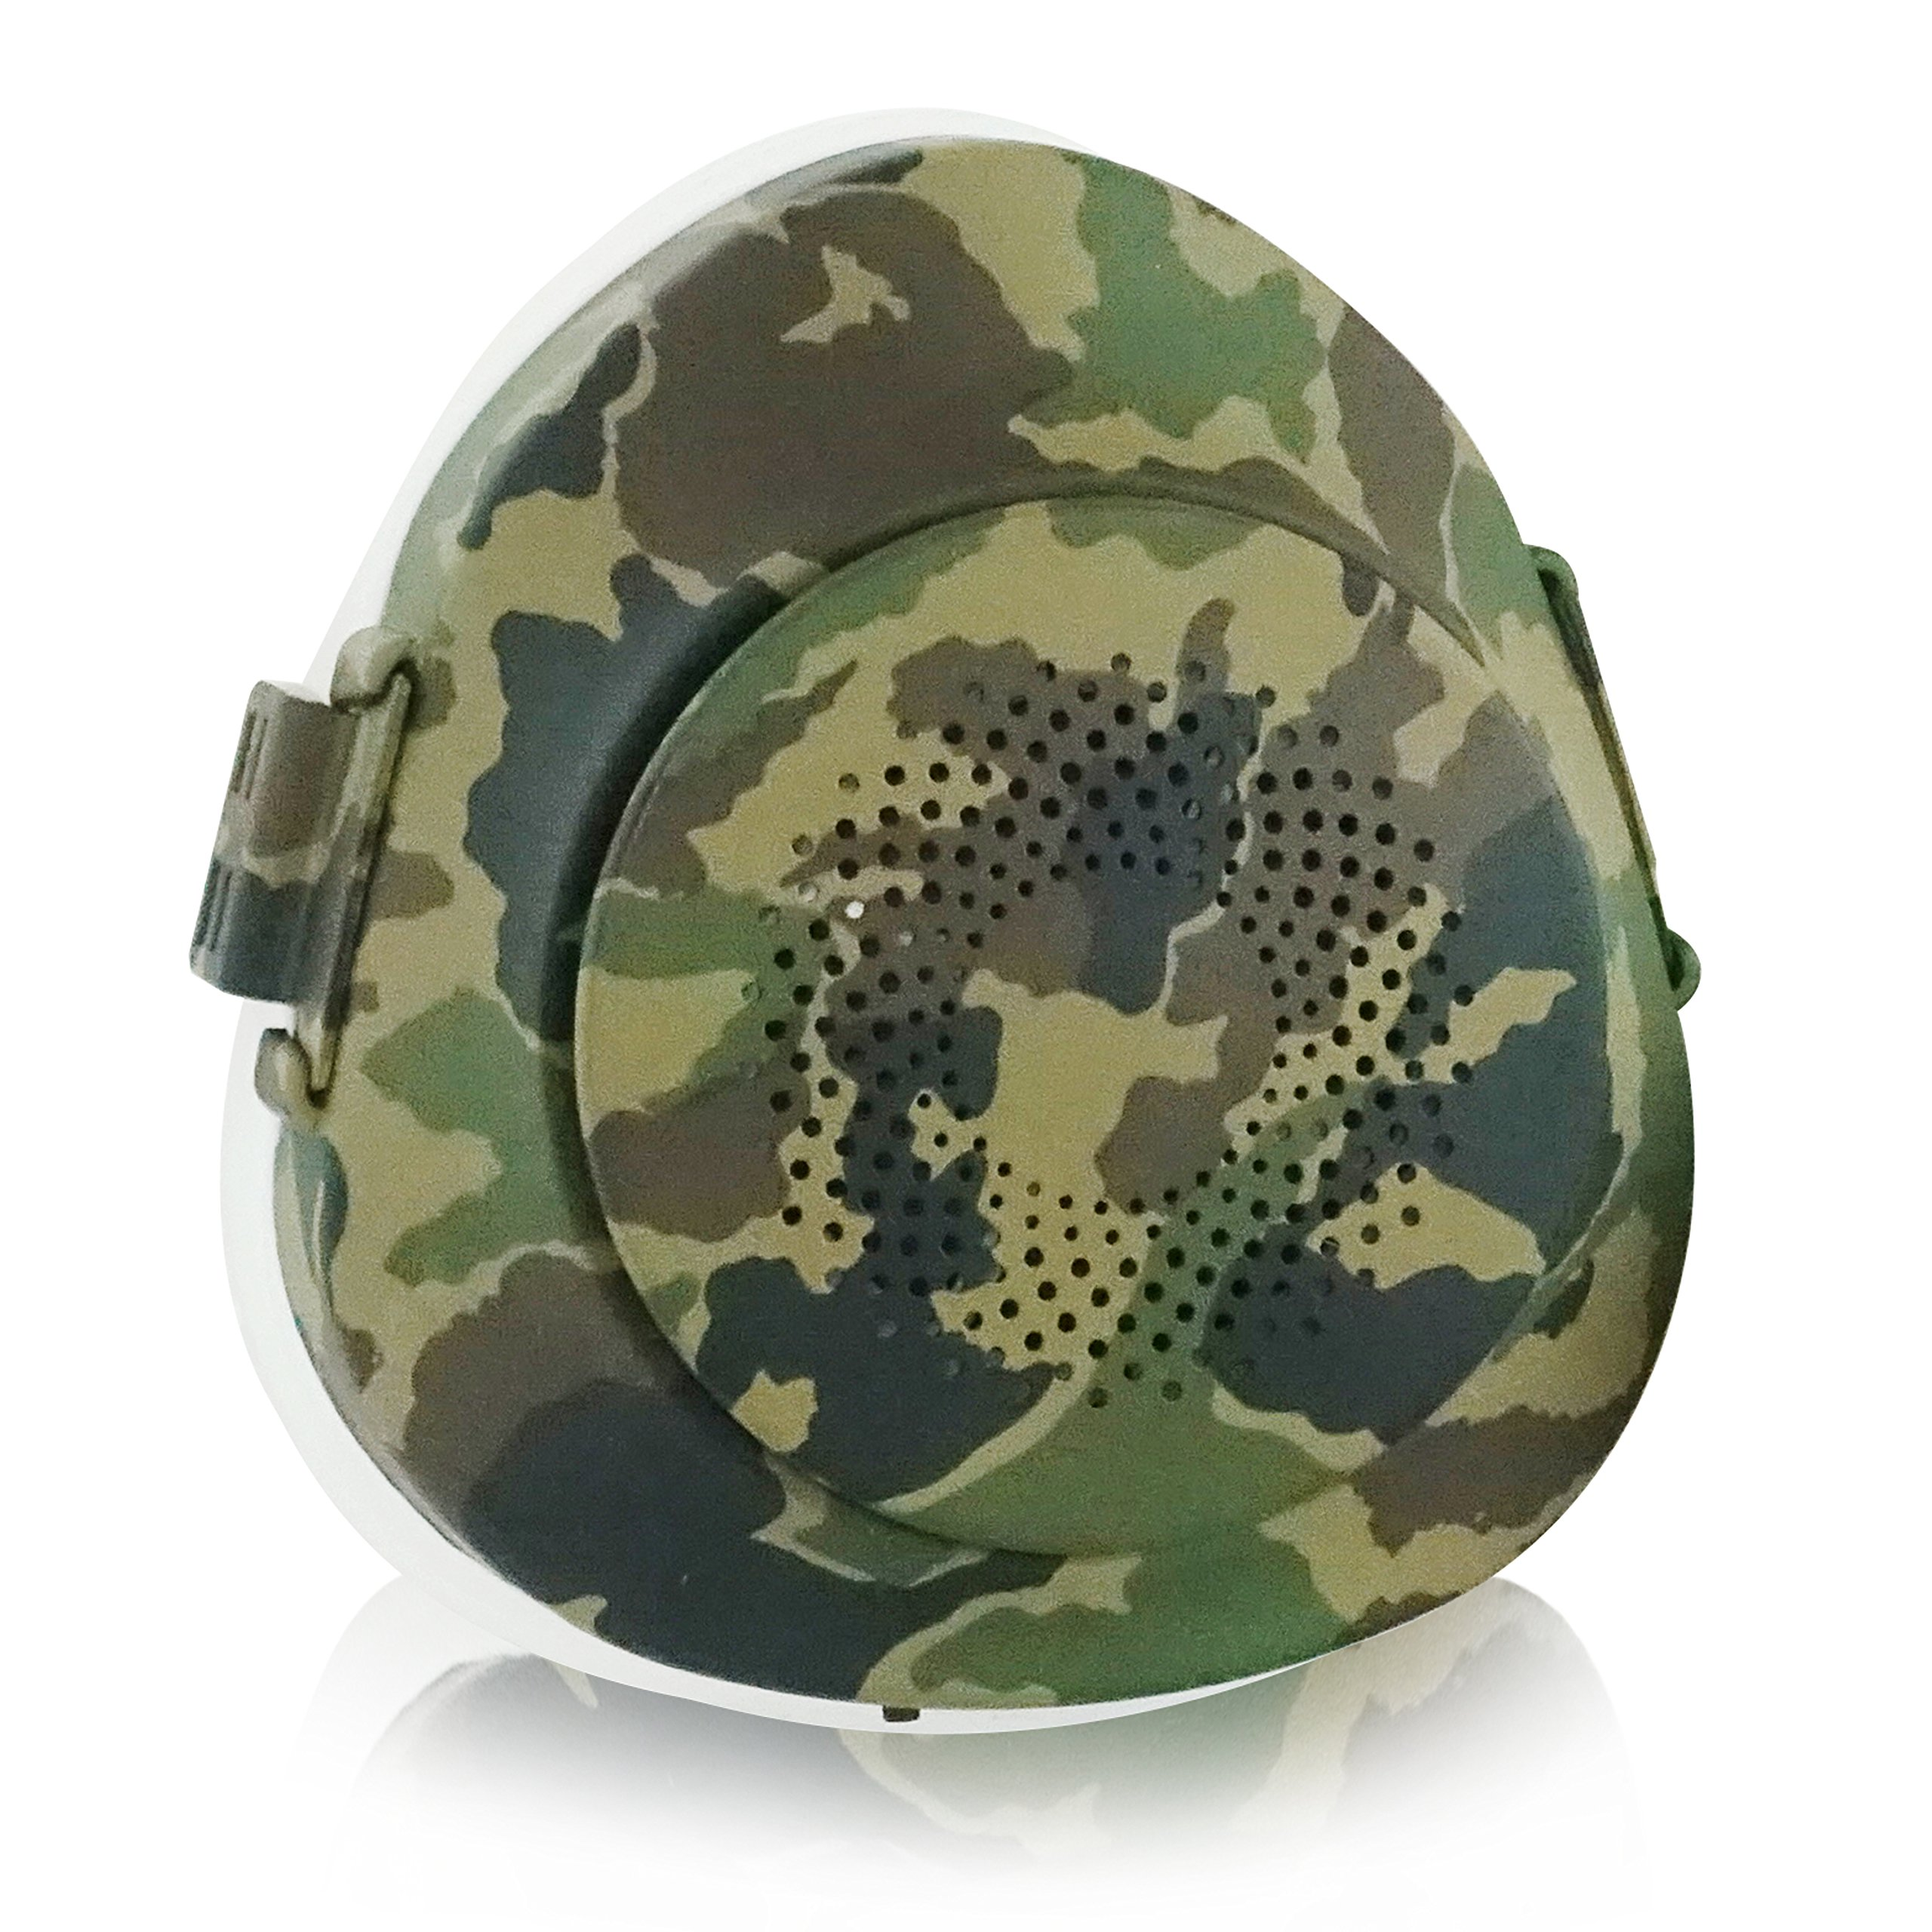 EPActive Fresh Air Purifying Mask N95/N99 Anti-Pollution Respirator with Active Fan for Prevention of PM 2.5, Odor, Dust, Smoke, Pollen, Mold, Allergen, Bacteria (Adult Medium, Camouflage) by CyberTech (Image #1)